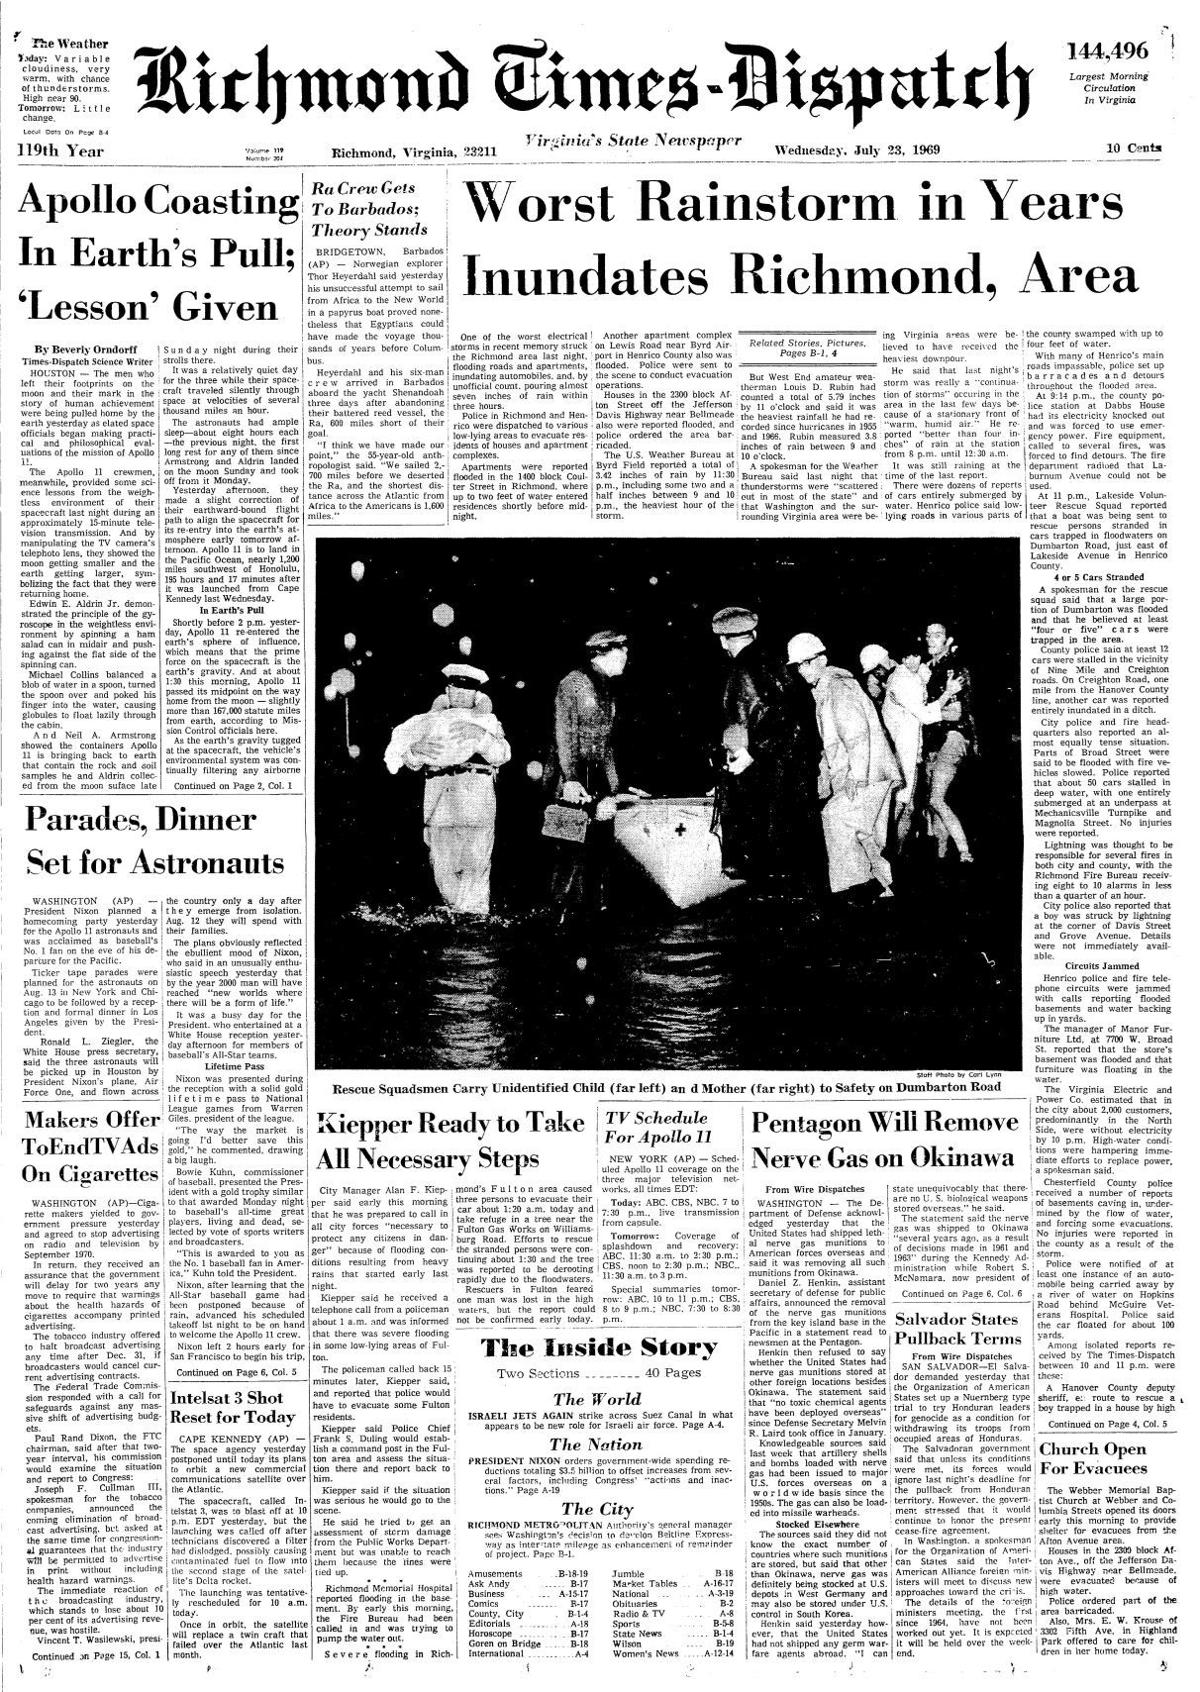 From the Archives: Times-Dispatch front pages during the Apollo 11